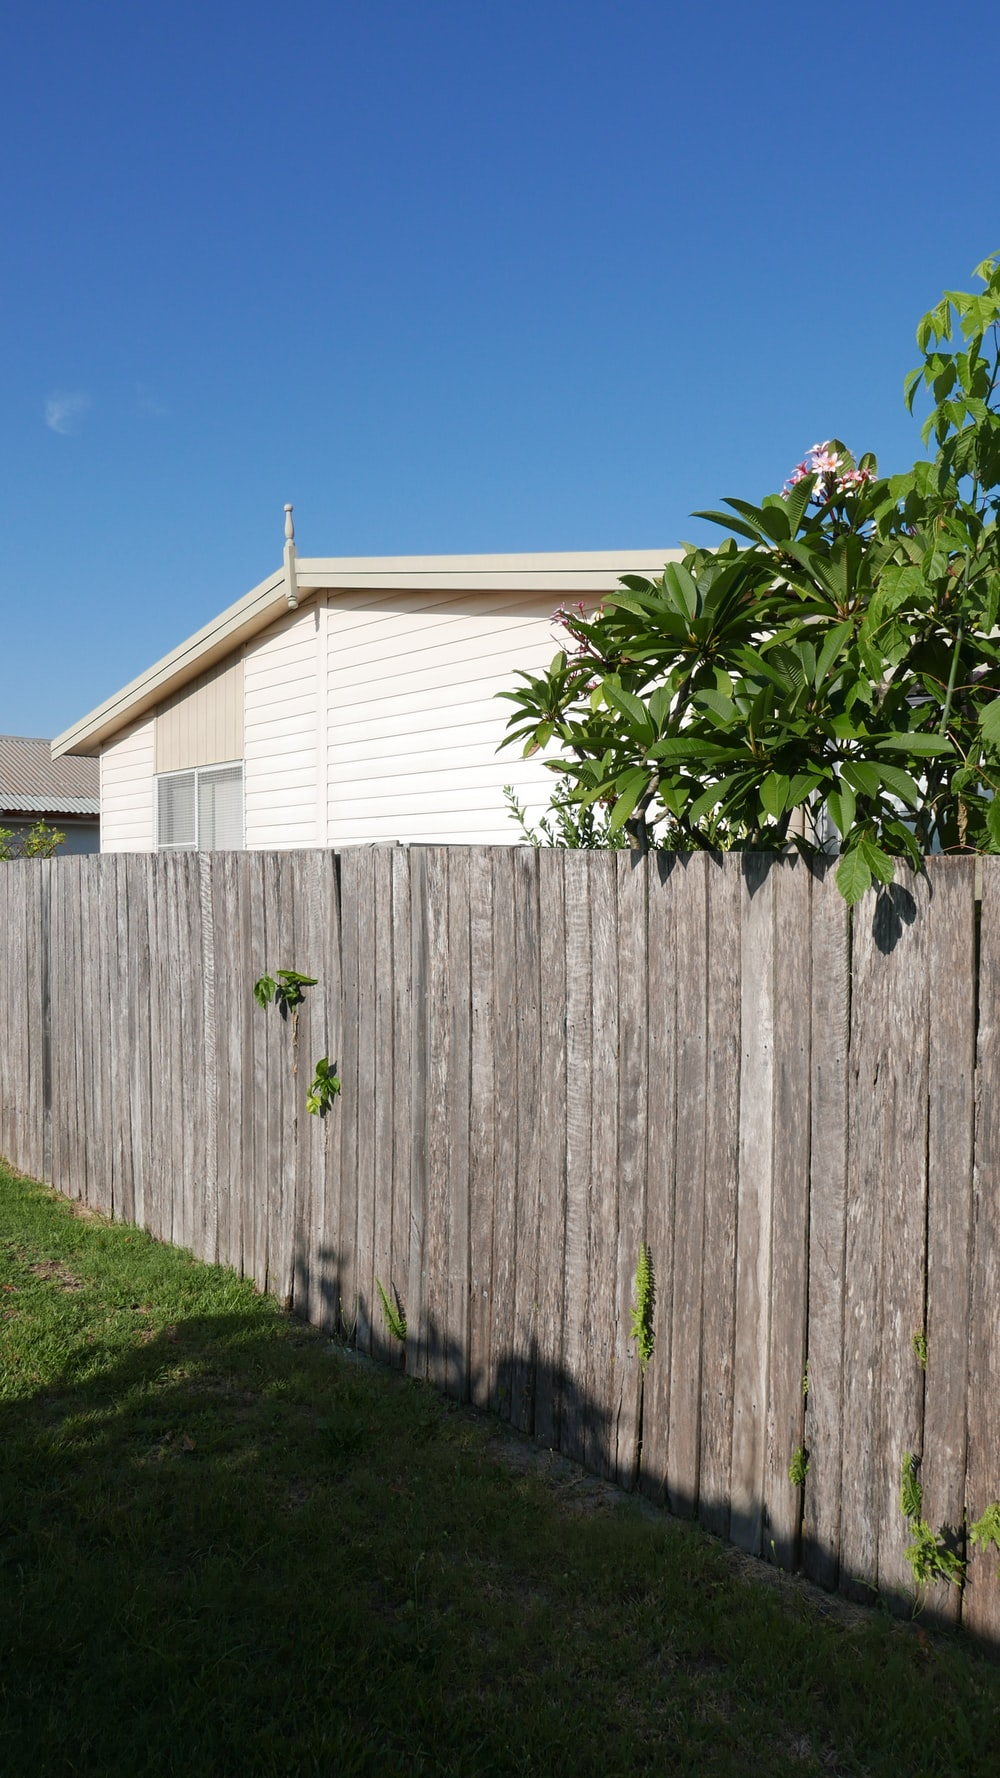 house near privacy fence and tree during day